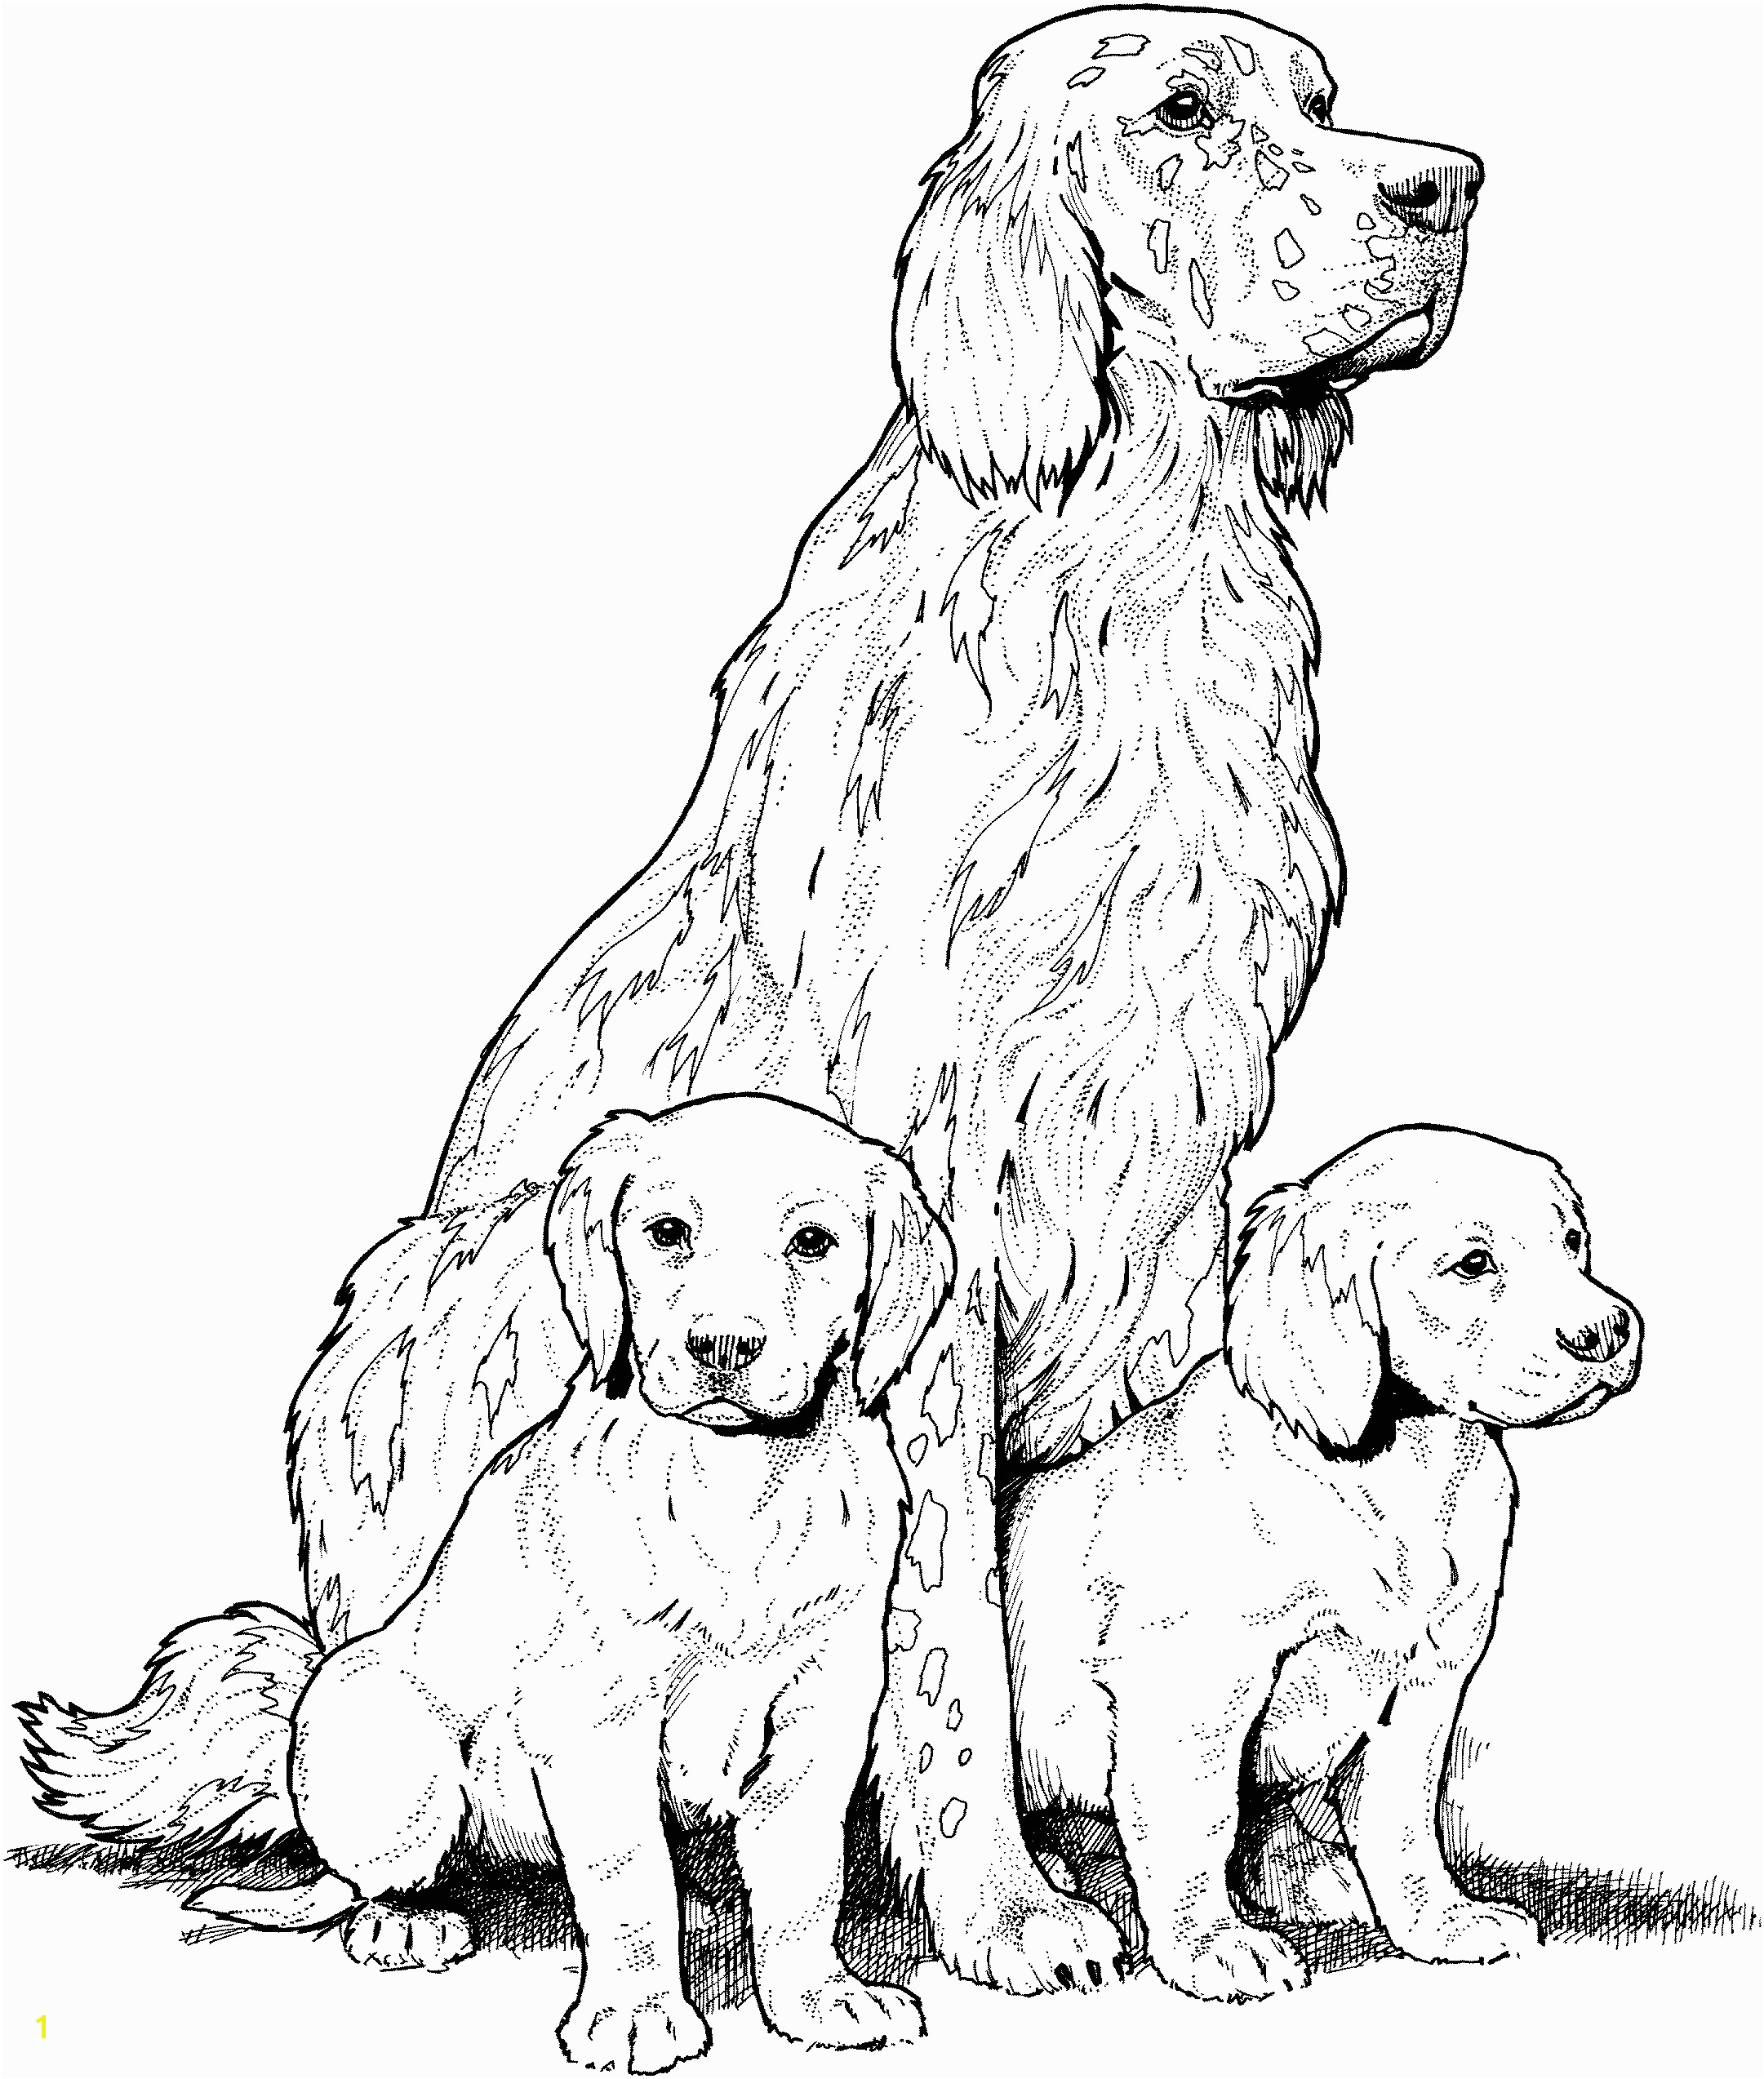 Dog Breed Coloring Pages Find beautiful coloring pages at TheColoringBarn